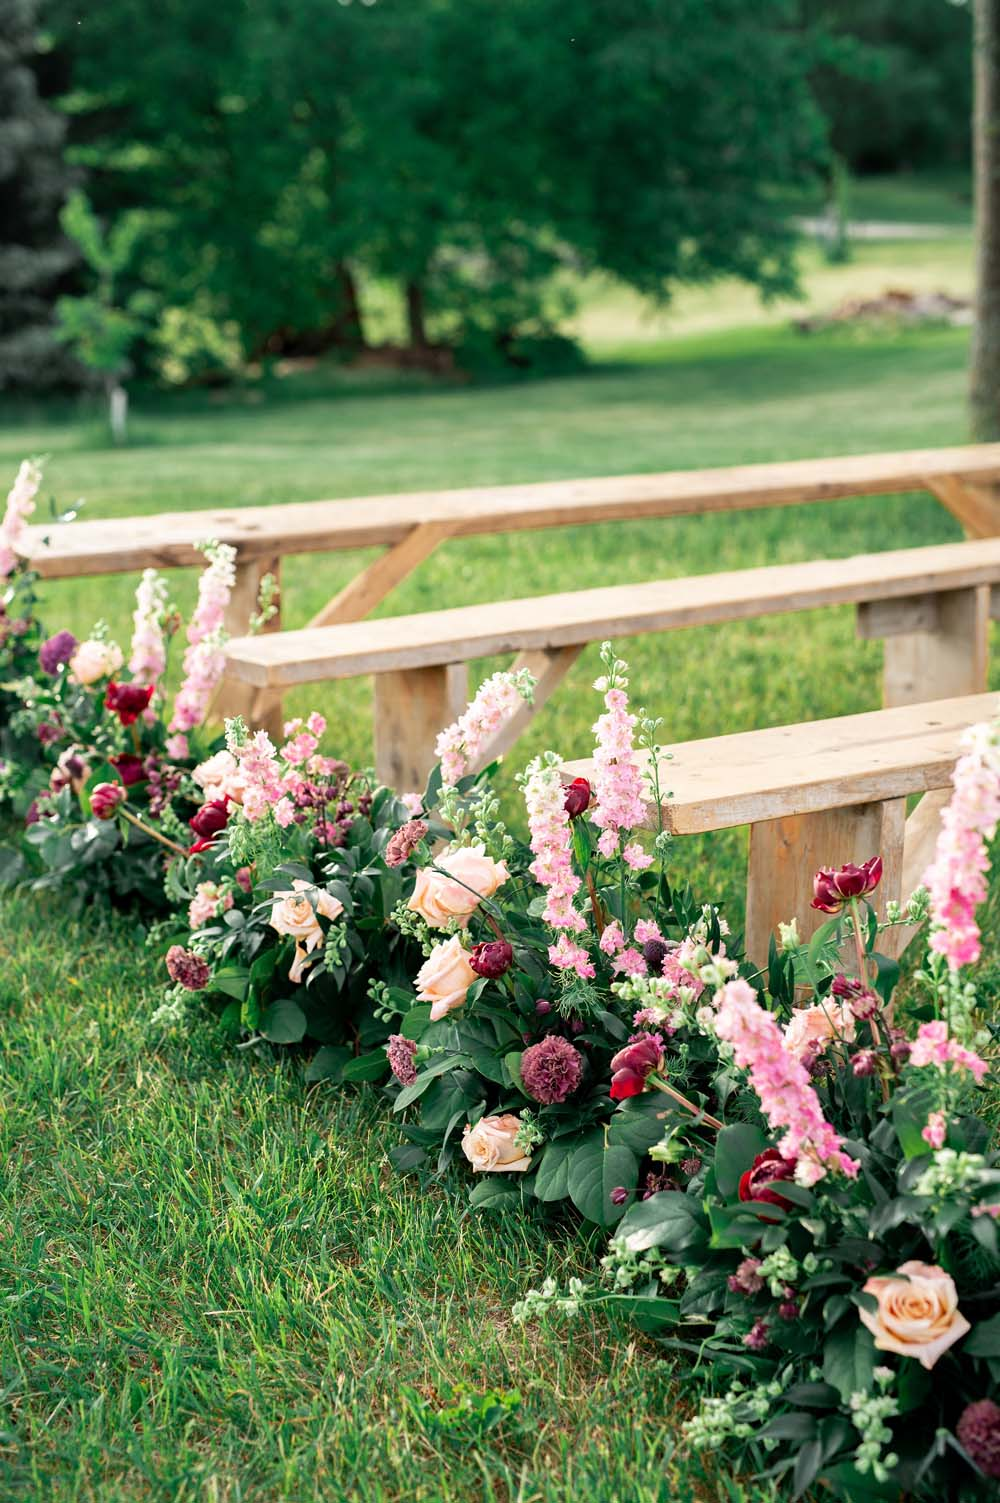 A Quirky Non-Traditional Wedding in Kitchener, Ontario - Floral benches